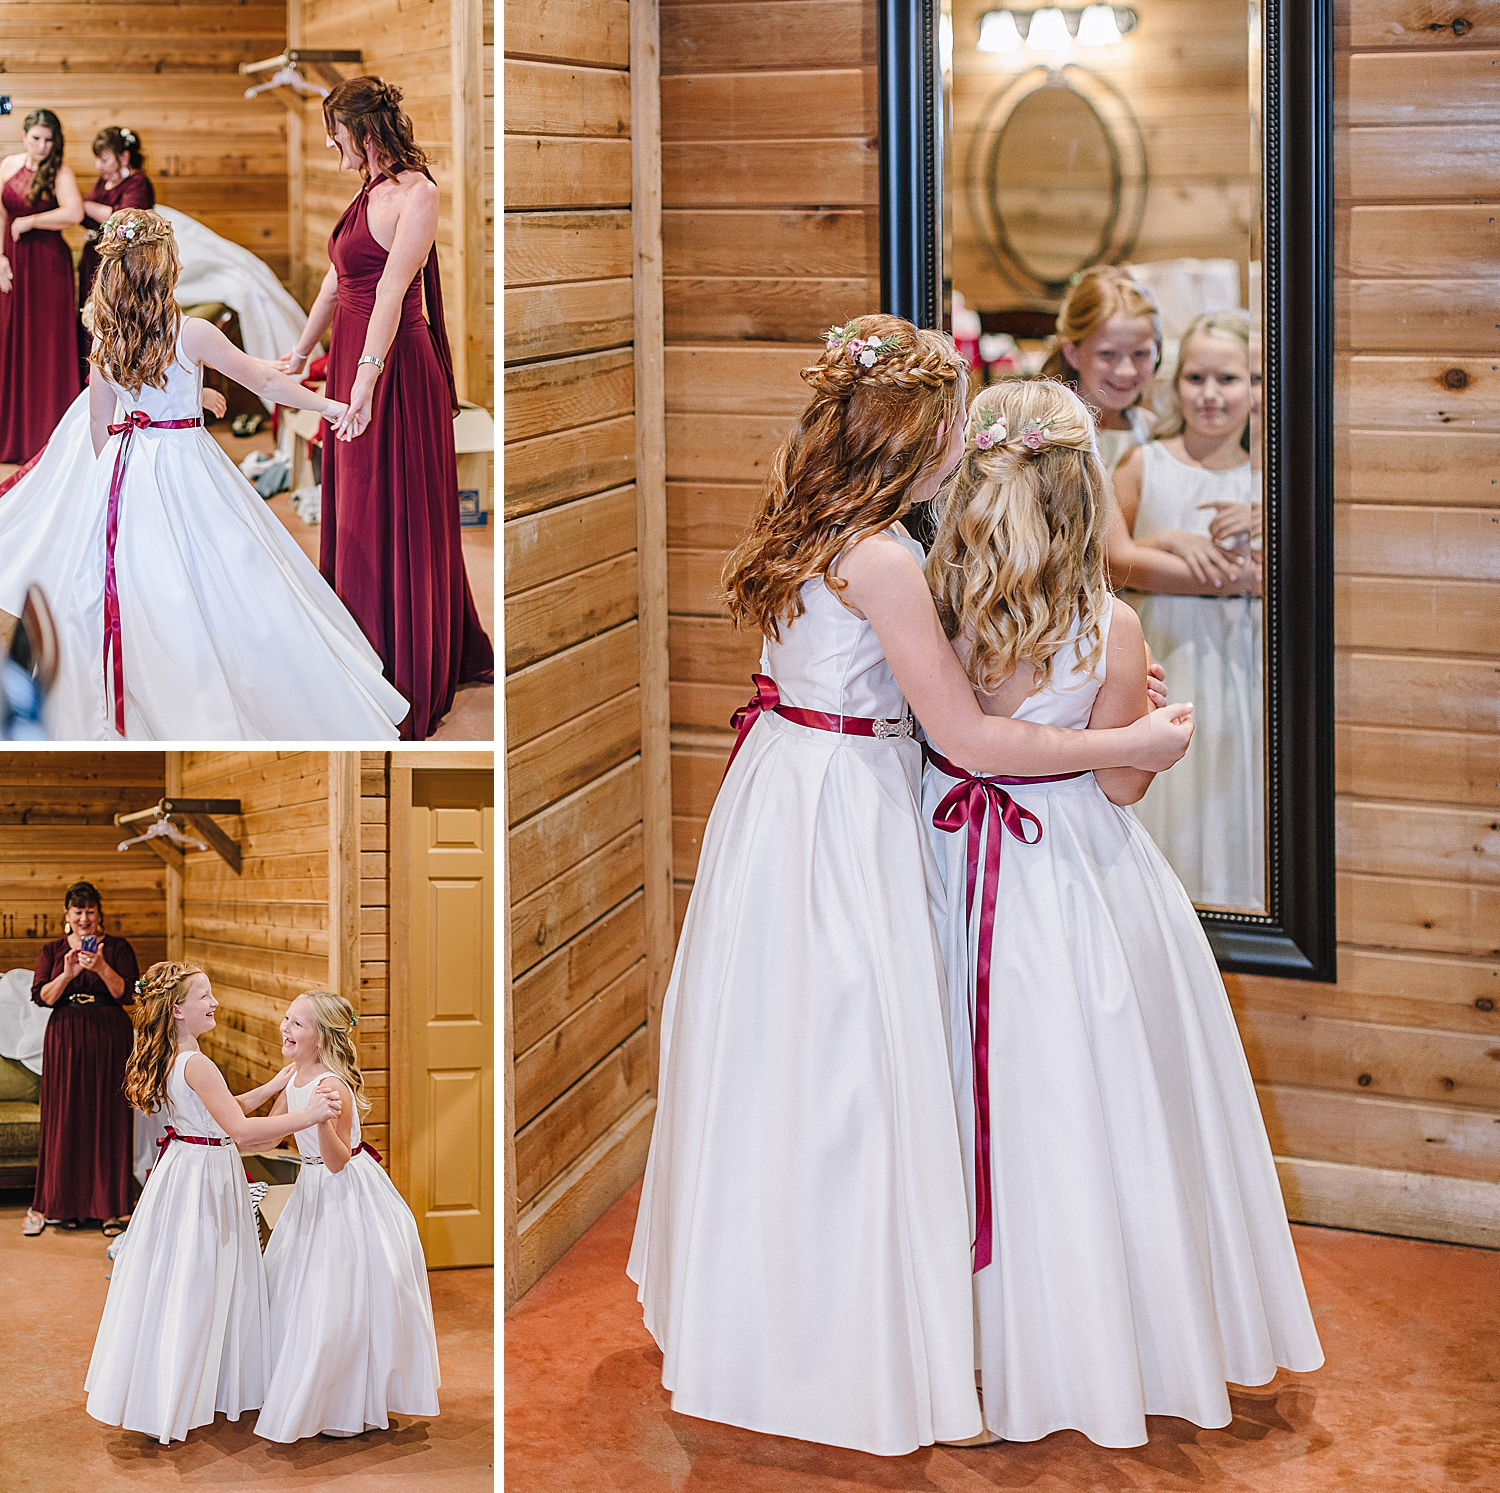 Geronimo-Oaks-Wedding-Venue-Seguin-Texas-Elegant-Navy-Burgundy-Wedding-Carly-Barton-Photography_0014.jpg